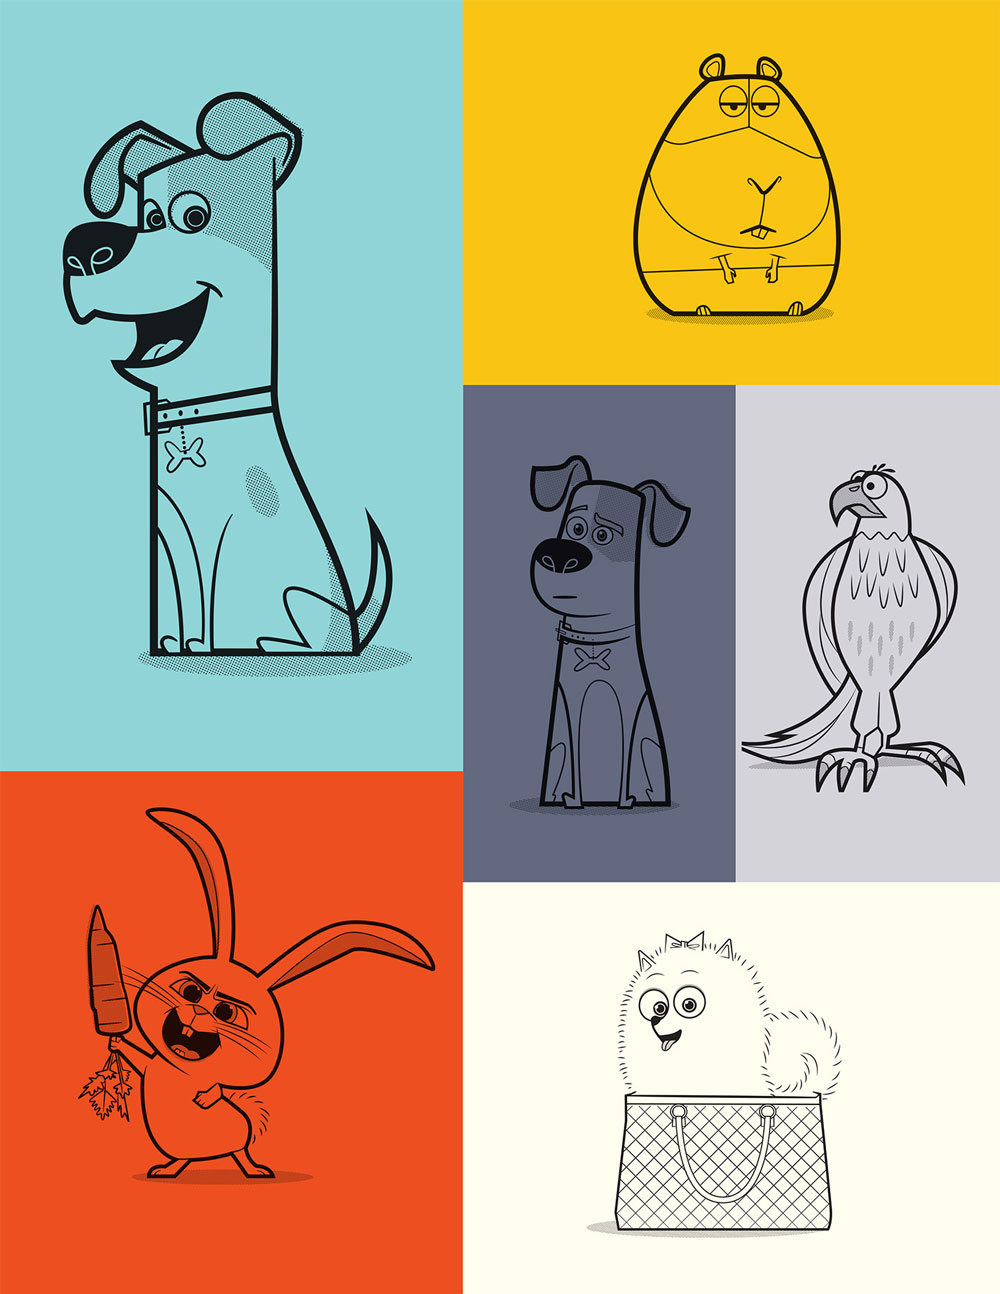 Pets Stylized Art and Product Graphics